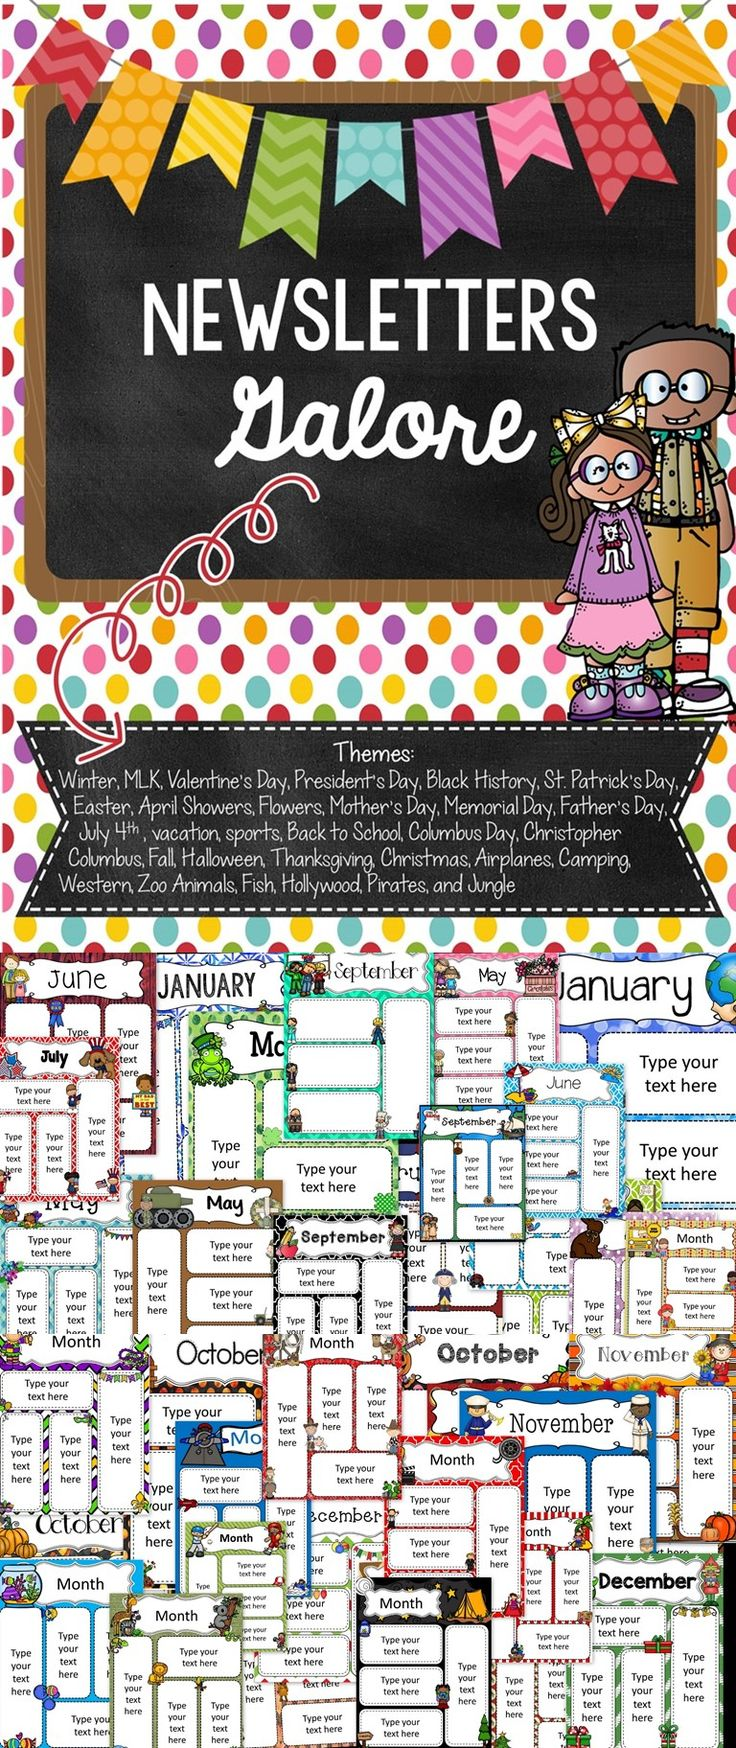 These are newsletters that can be used in the classroom throughout the entire year. Holidays and various themes are included.